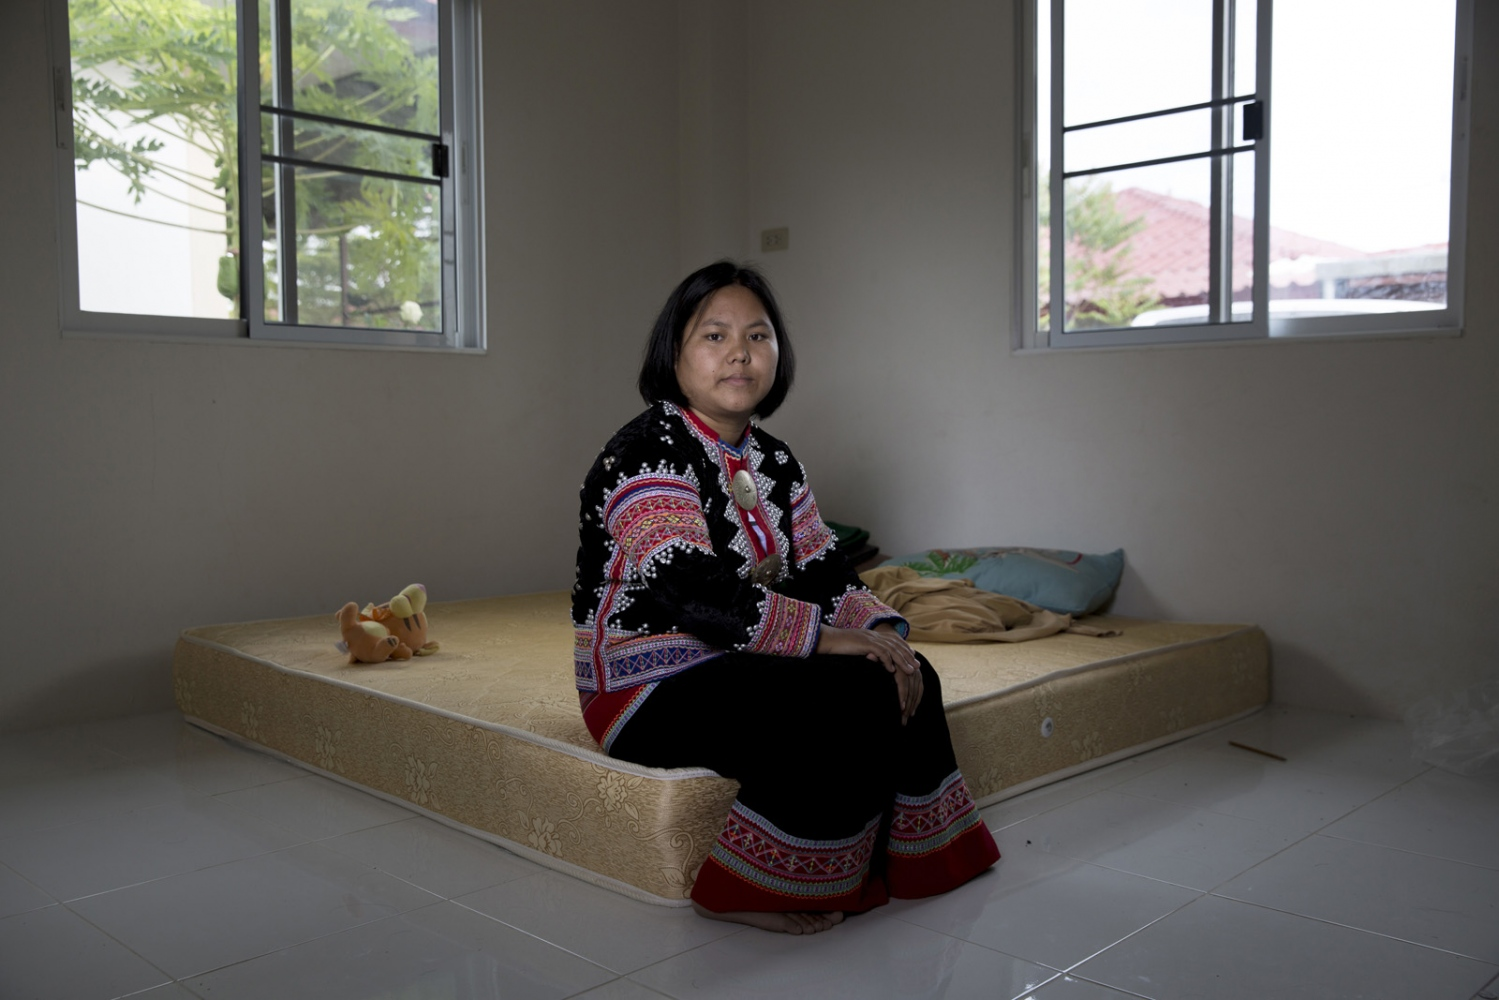 Yuphin Saja, a member of the Lahu minority group in the safe house she has been forced to move to with her husband and small children for their own protection after a member of the group was allegedly shot dead at a checkpoint.  Chiang Mai, Thailand